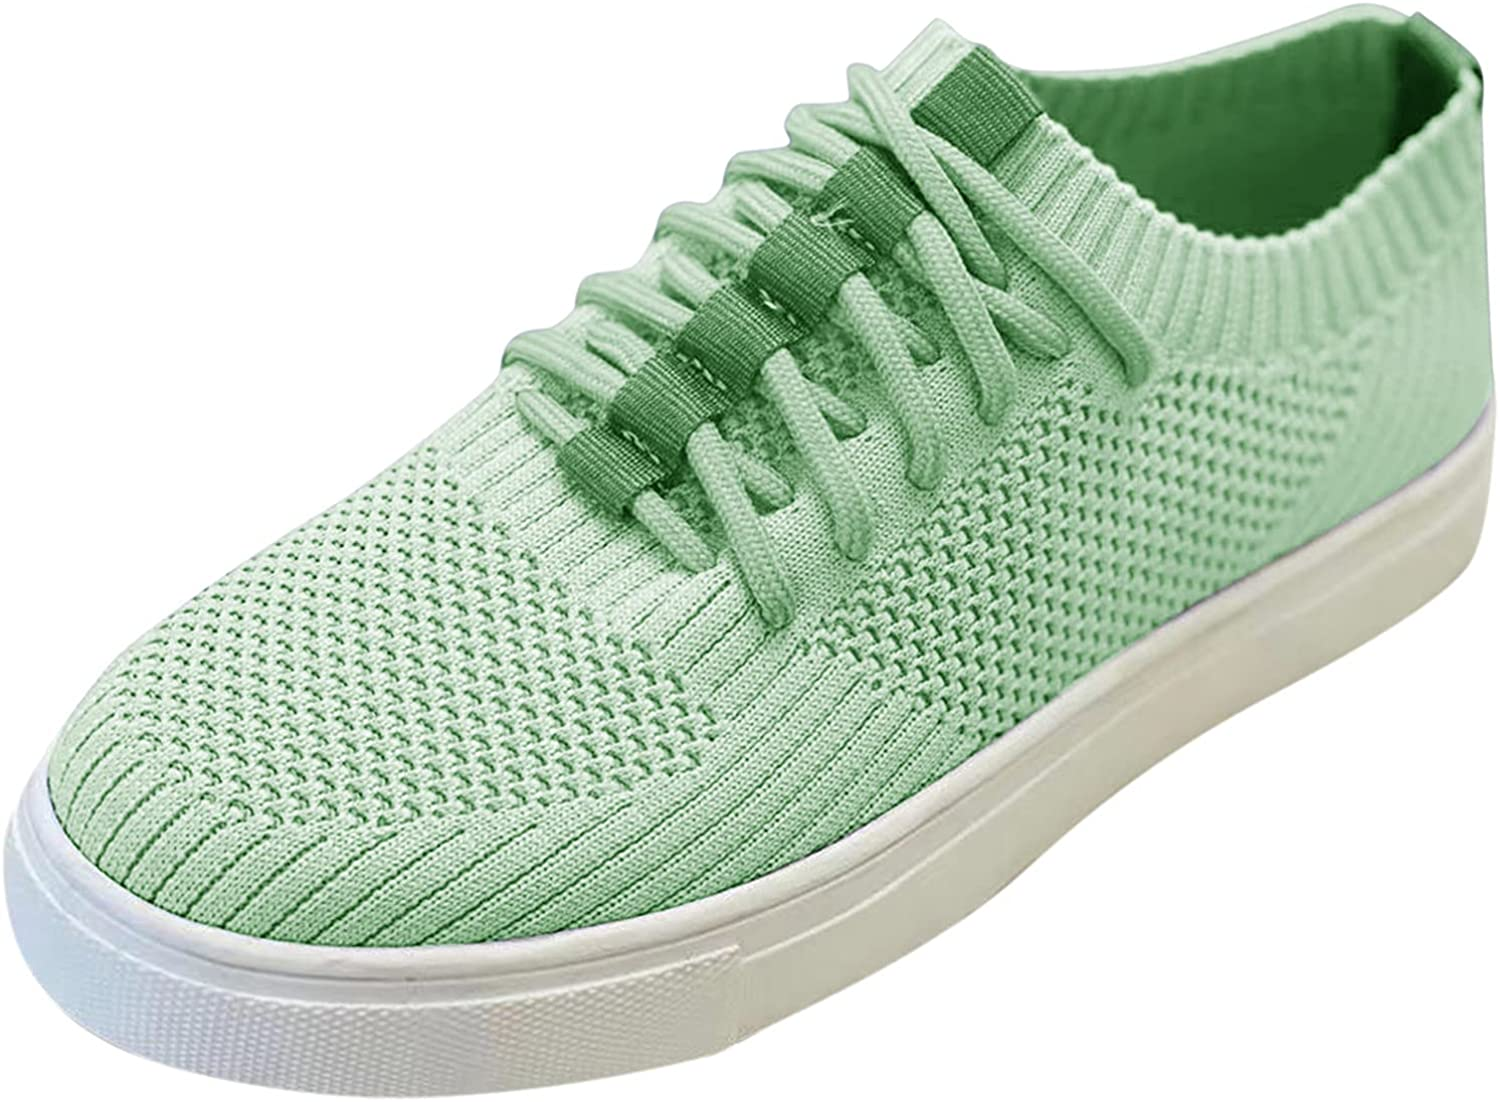 Free shipping / New Womens Comfort Elastic Max 78% OFF Sock Slip On No Shoes Lightweight Walking